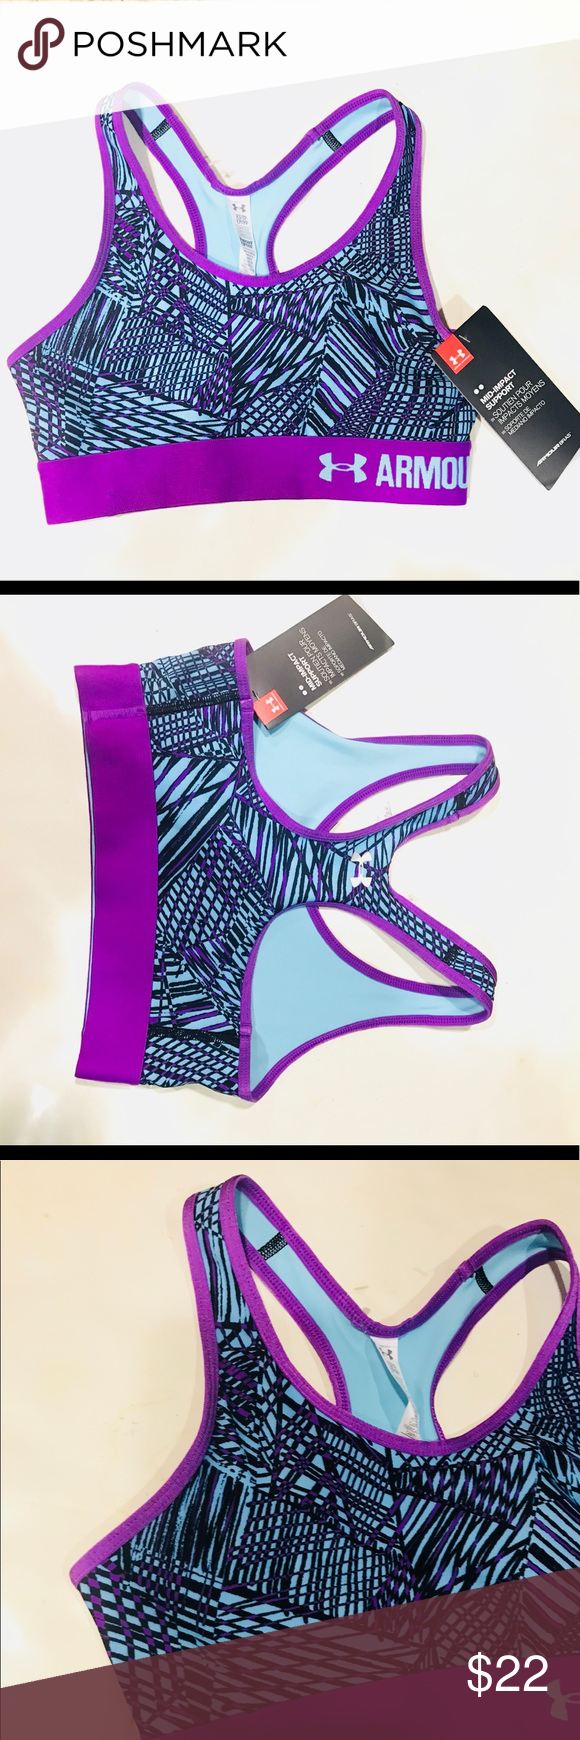 088fb4ede4 Under Armour Womens Mid Pact Support Sports Bra XS BRAND NEW WITH TAGS  UNDER ARMOUR MID IMPACT SUPPORT SPORTS BRA SIZE XS GORGEOUS FUNNNN COLORS  Under ...